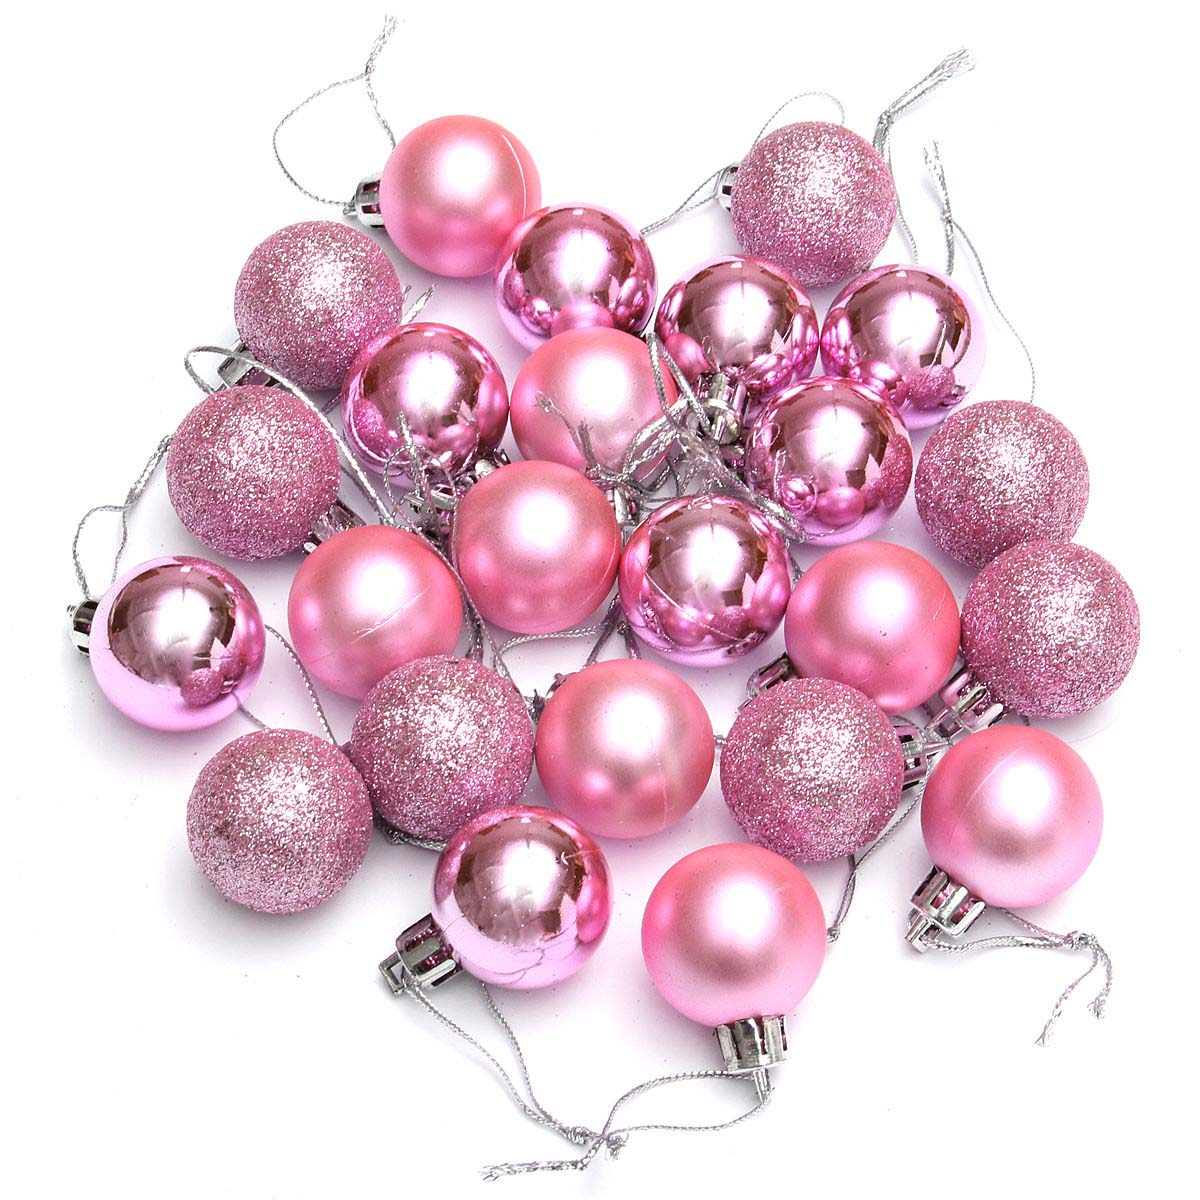 Hot pink christmas decorations - Szs Hot 24pcs Chic Christmas Baubles Tree Plain Glitter Xmas Ornament Ball Decoration Pink China